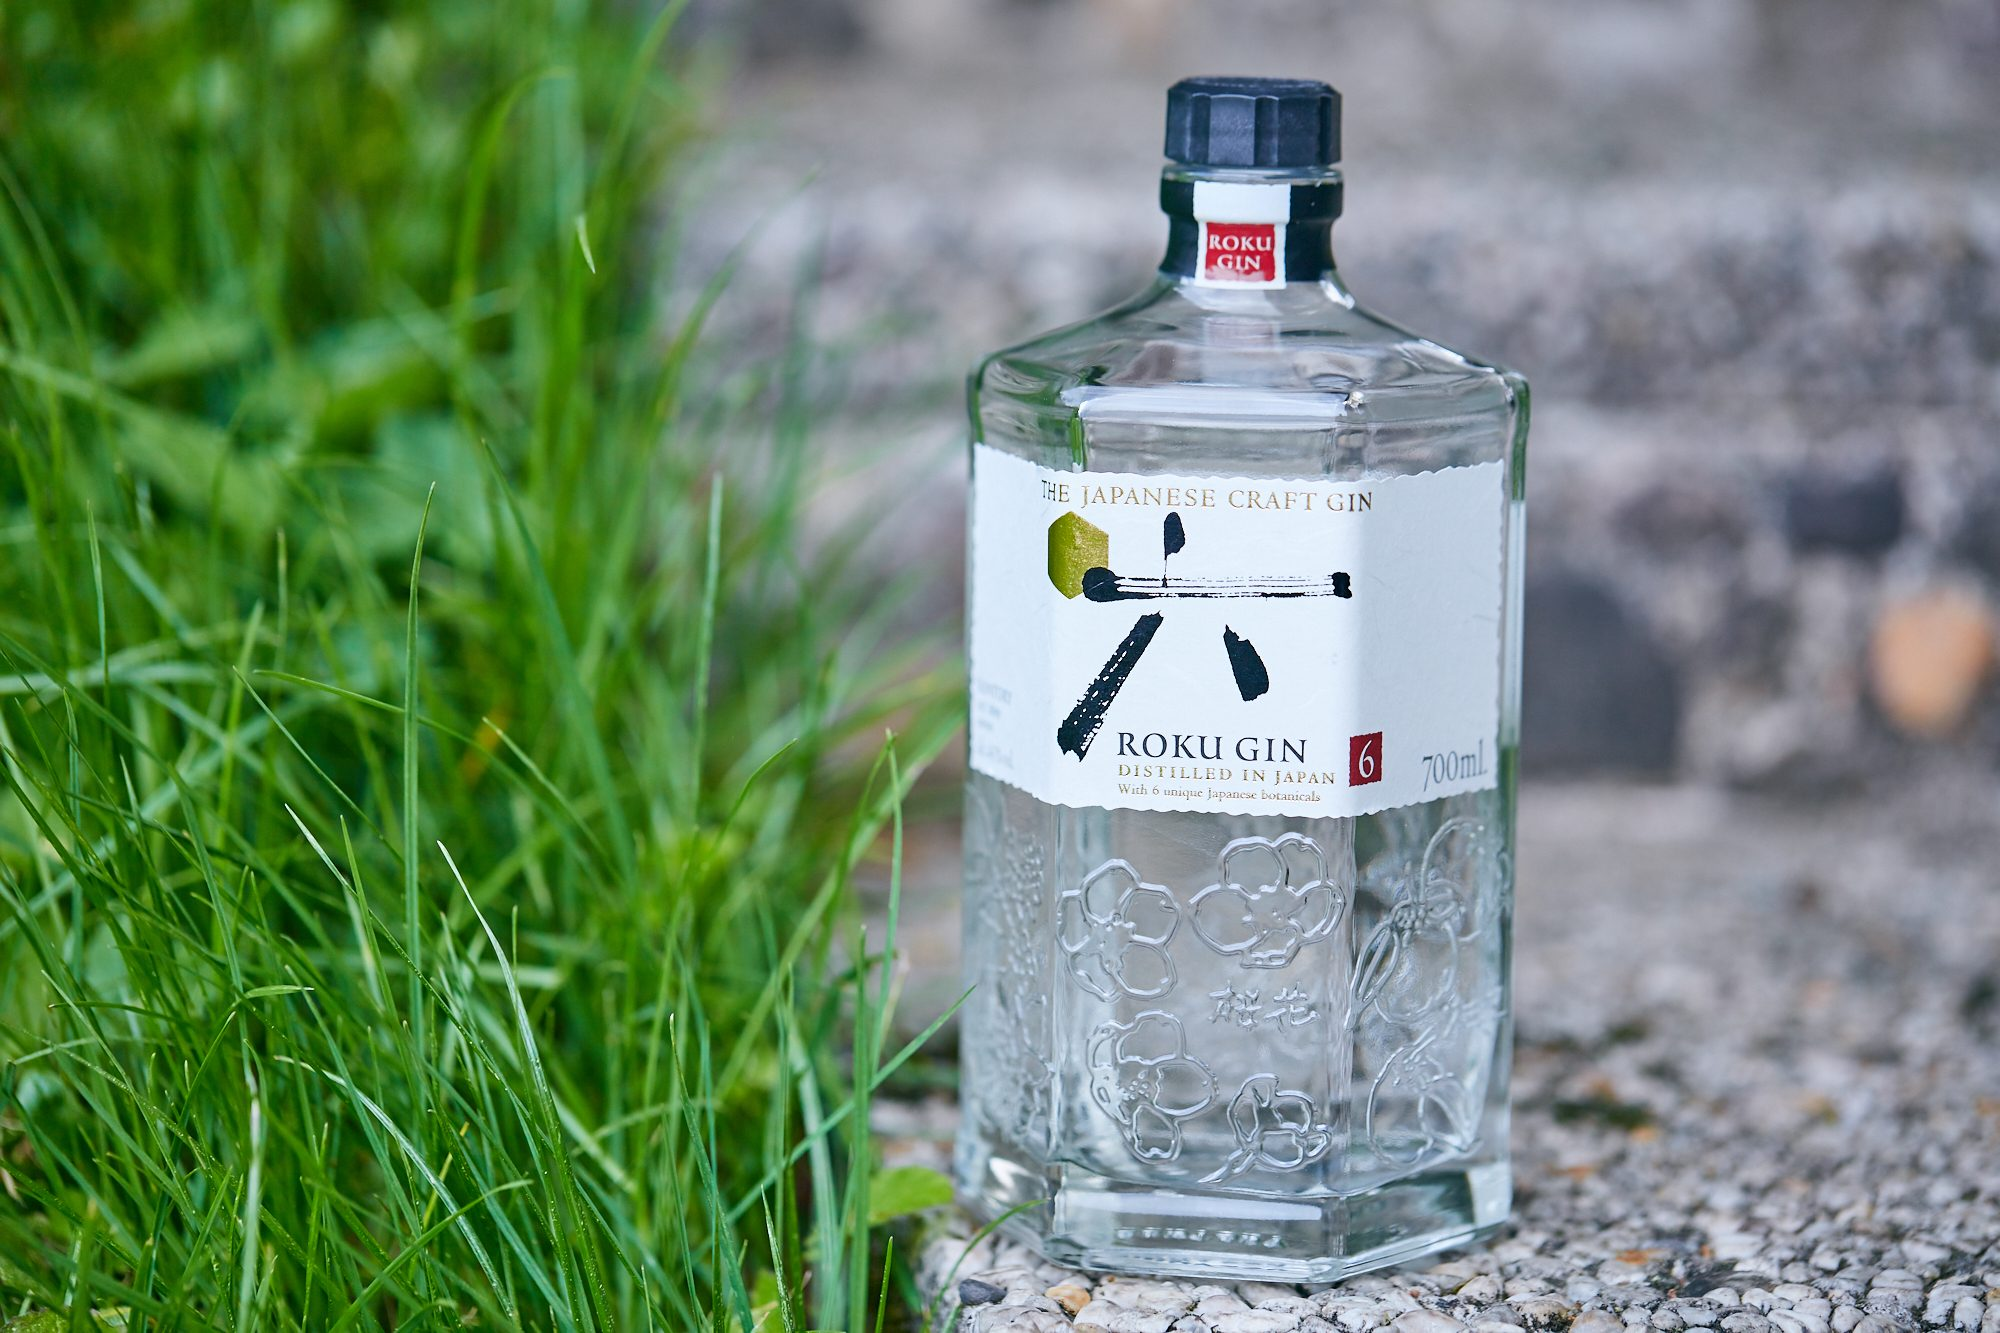 """Roku"" Japanese Craft Gin"